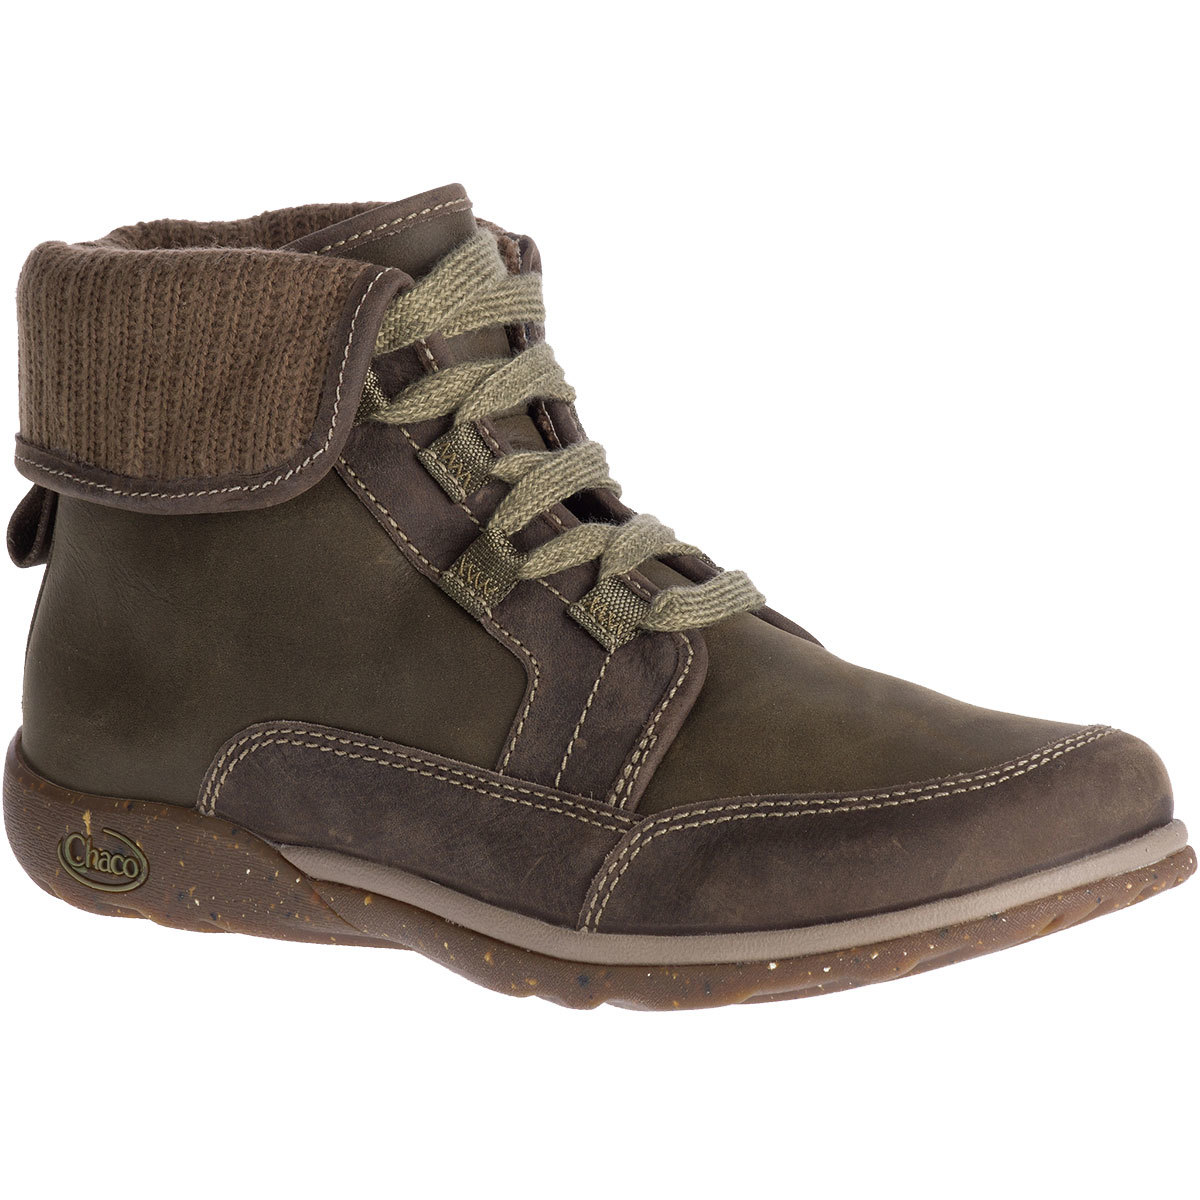 Chaco Women's Barbary Waterproof Fold-Down Storm Boots - Green, 8.5